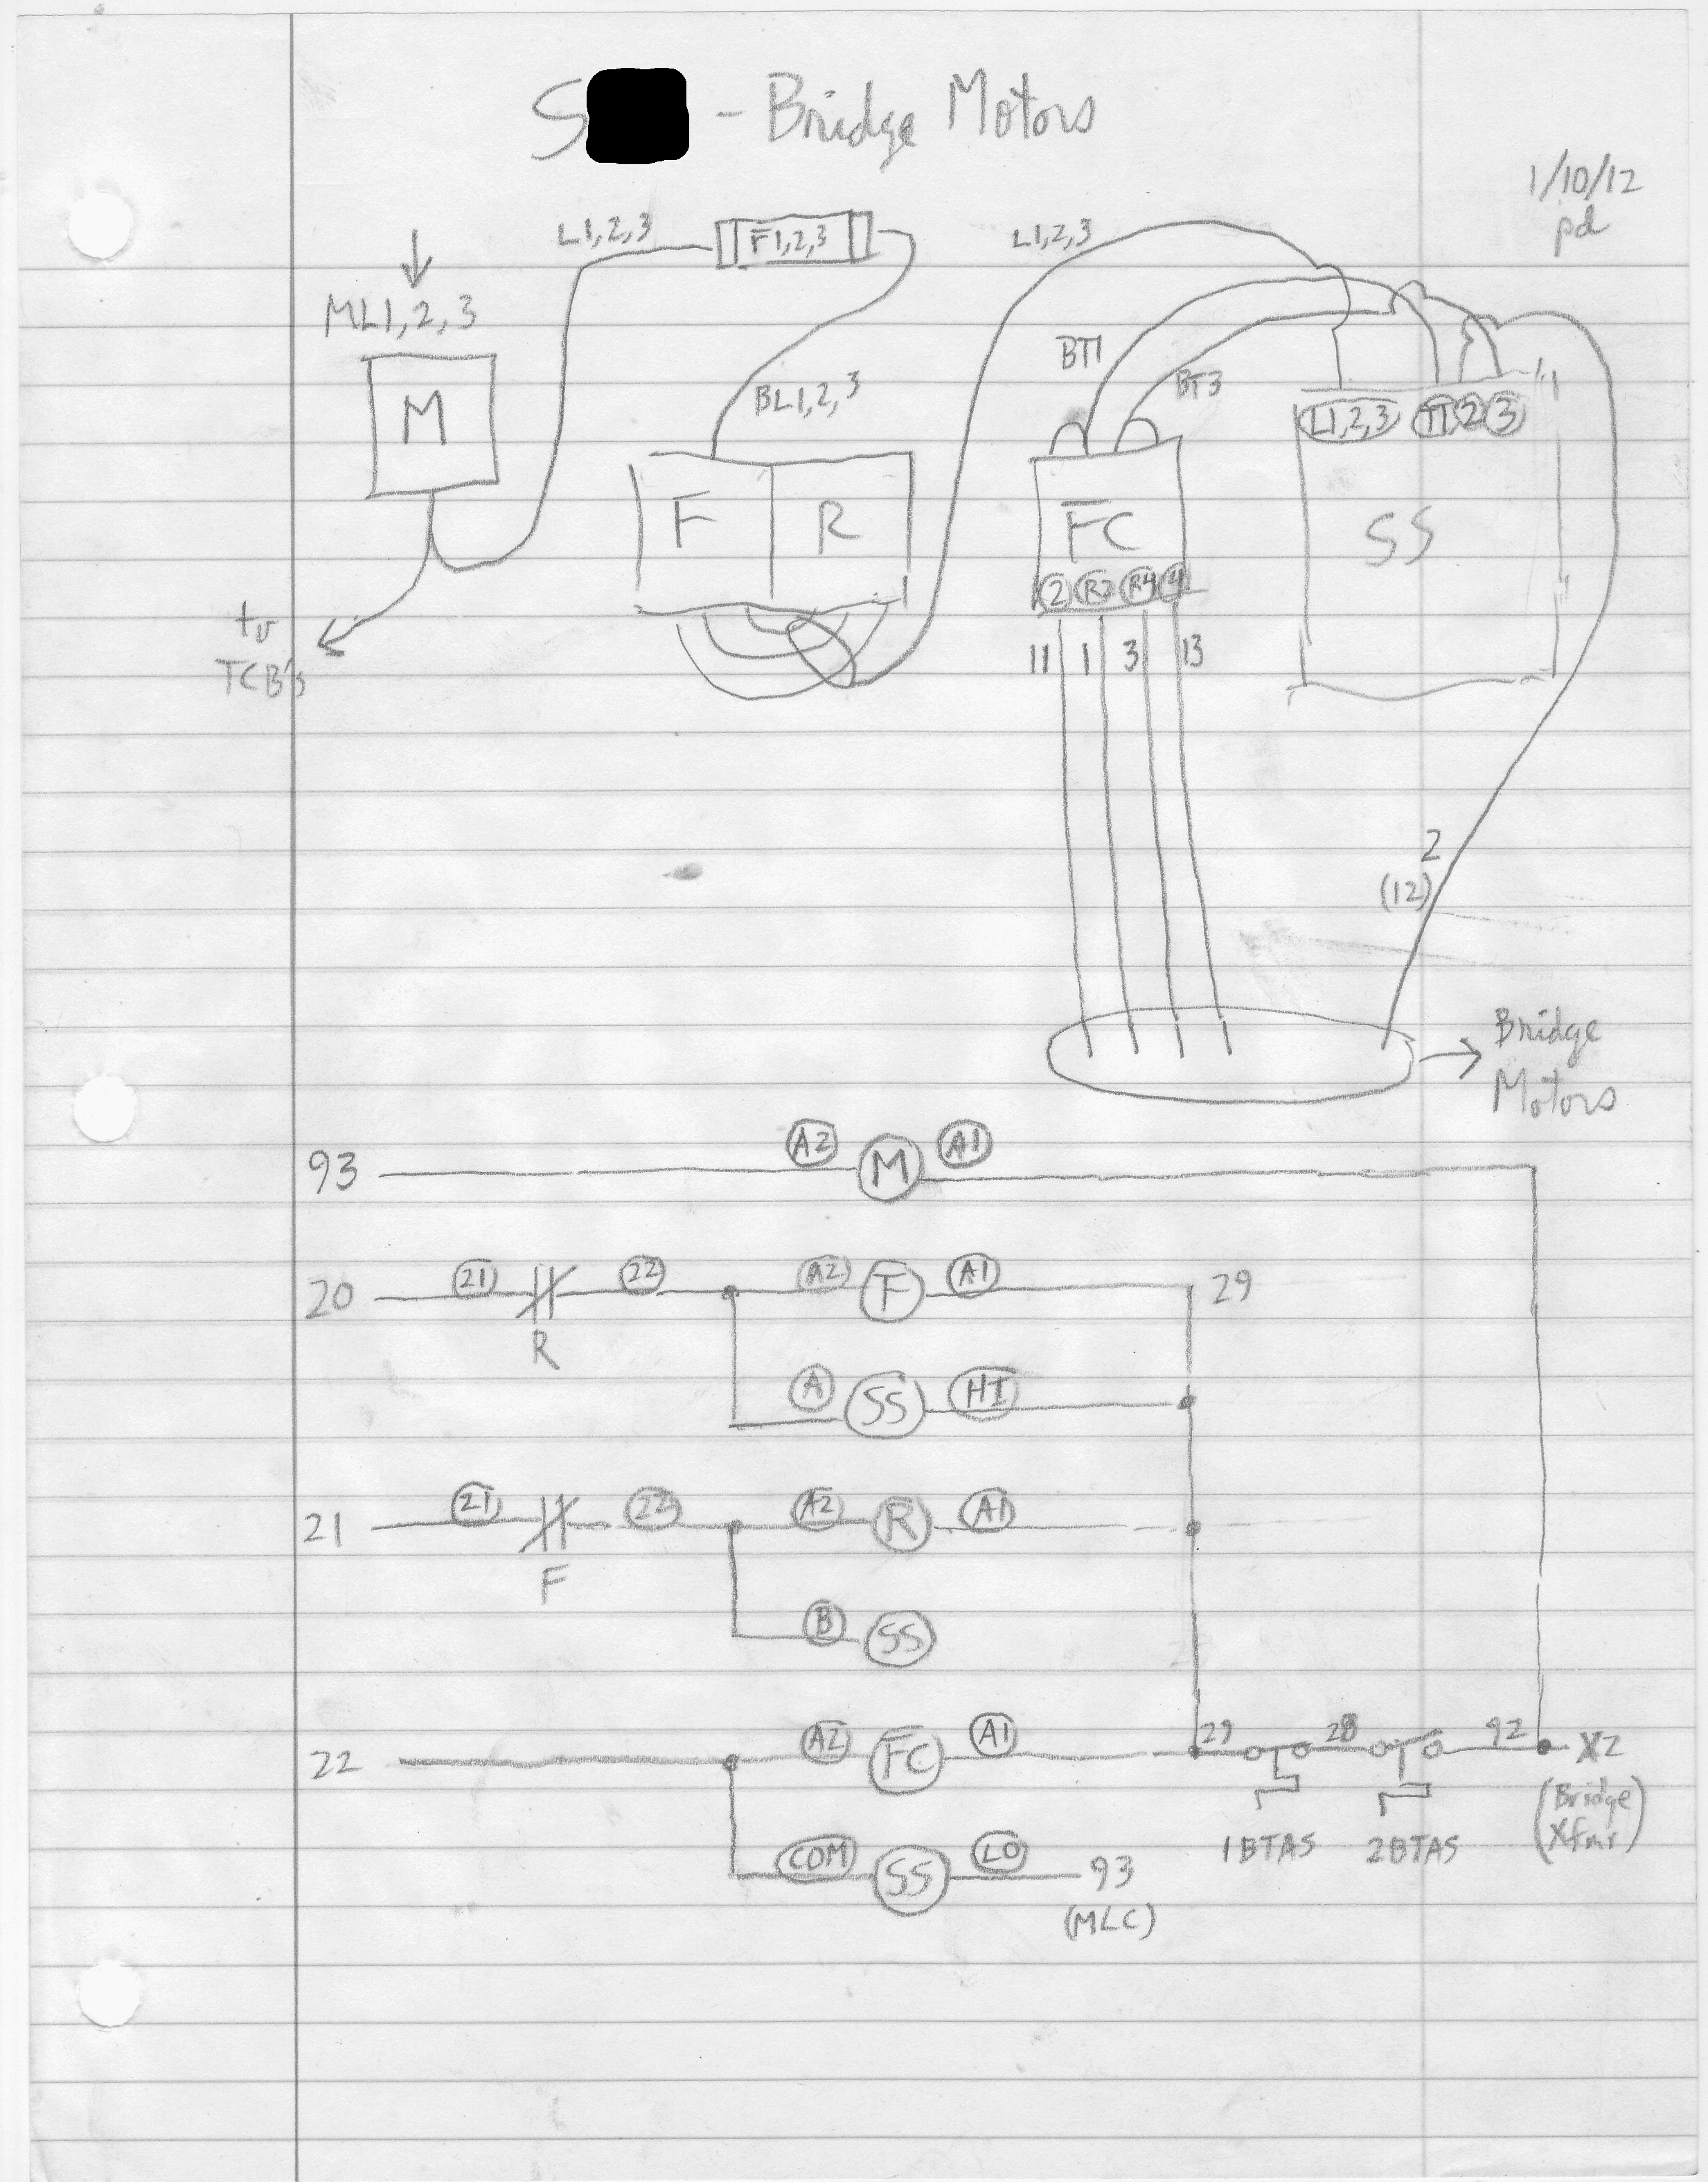 kill switch wiring diagram further ignition switch wiring diagram